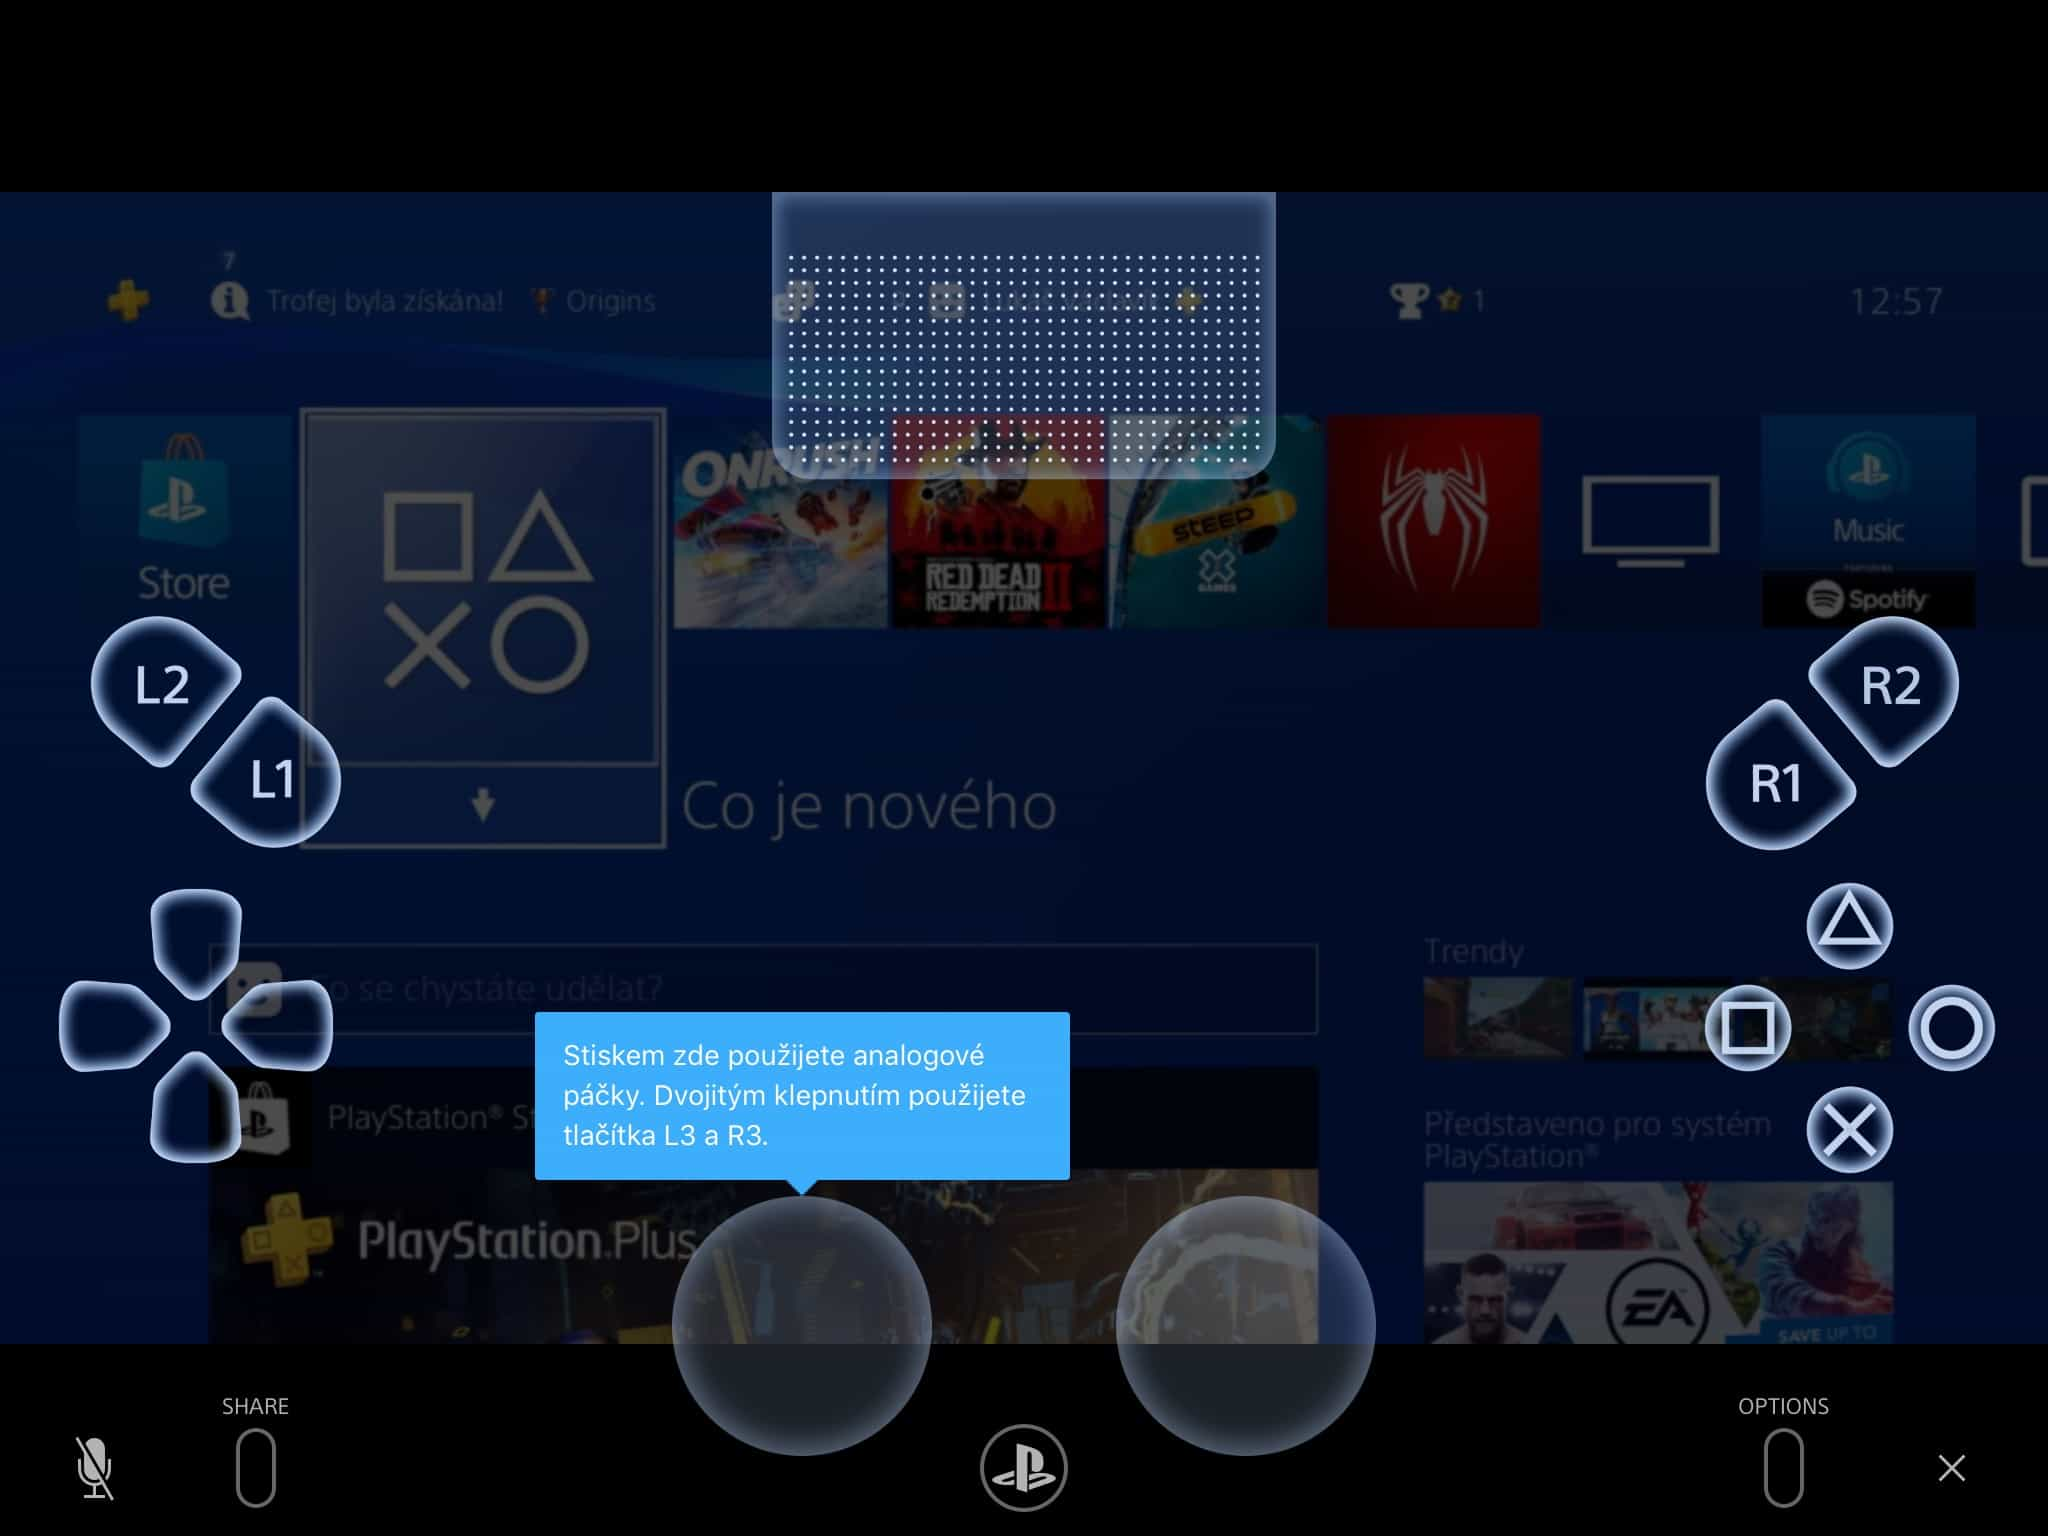 sony ps4 remote play ios 1